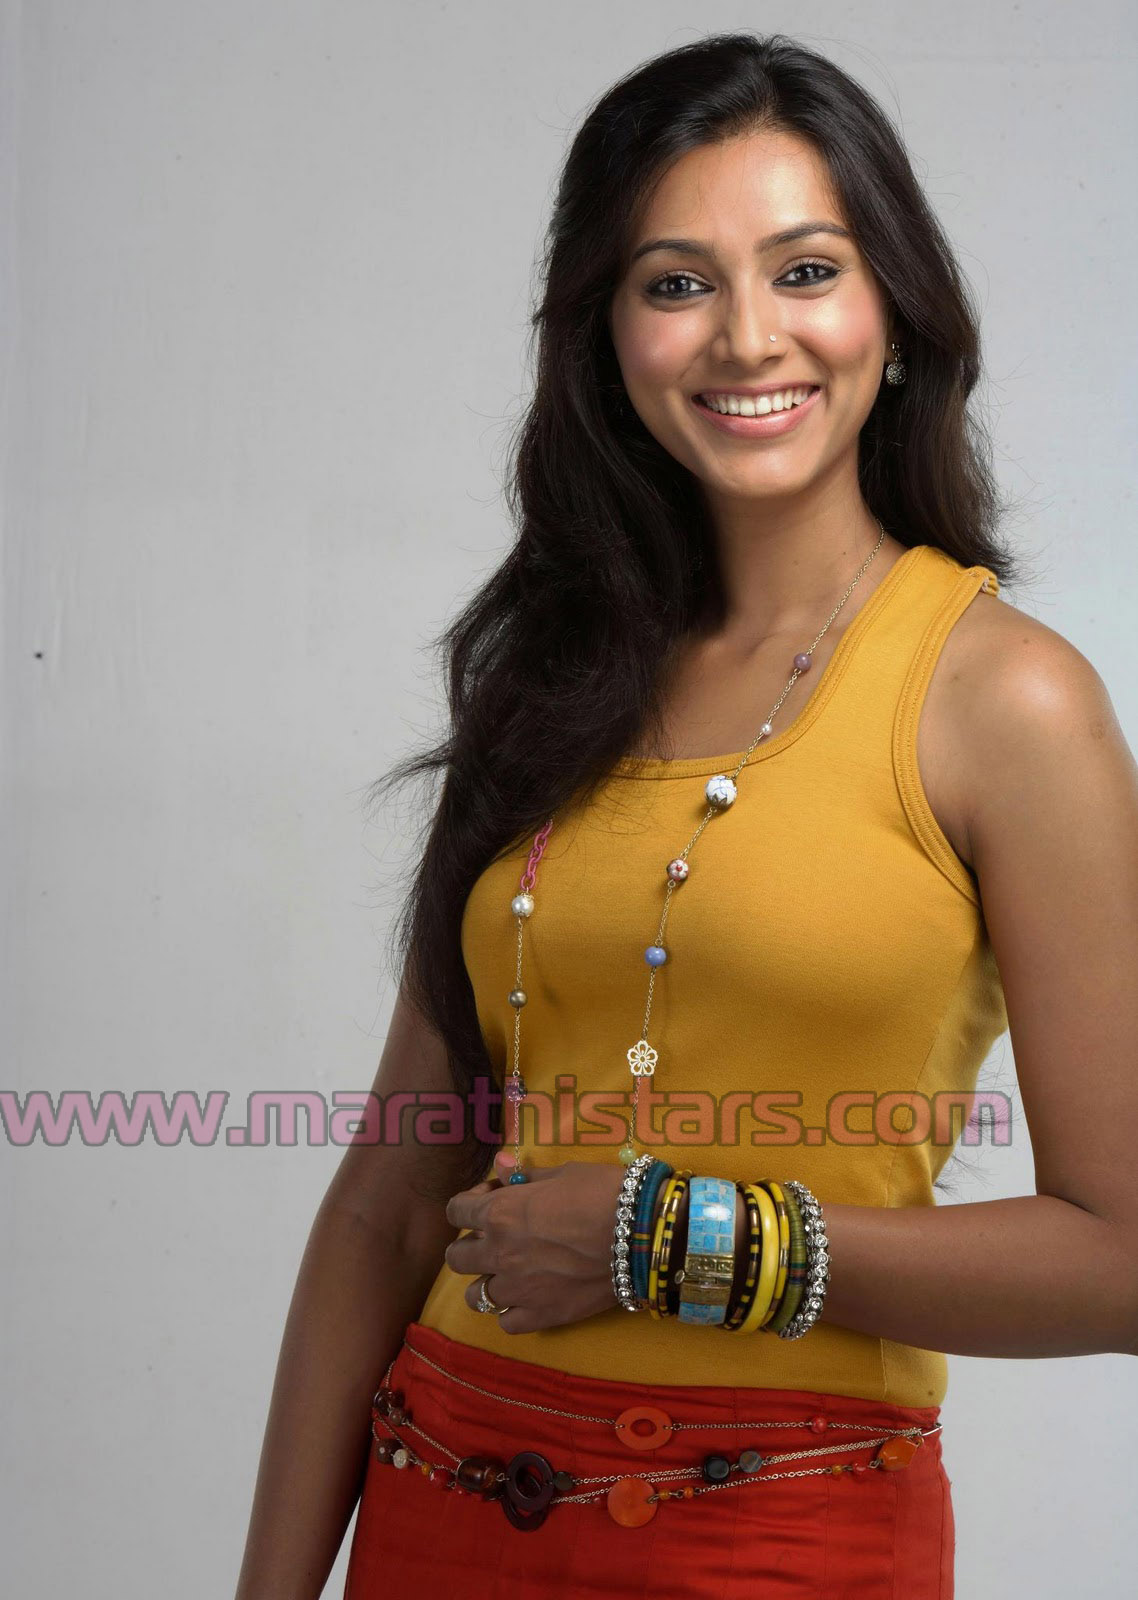 pallavi subhash in guntata hriday he - photo #1